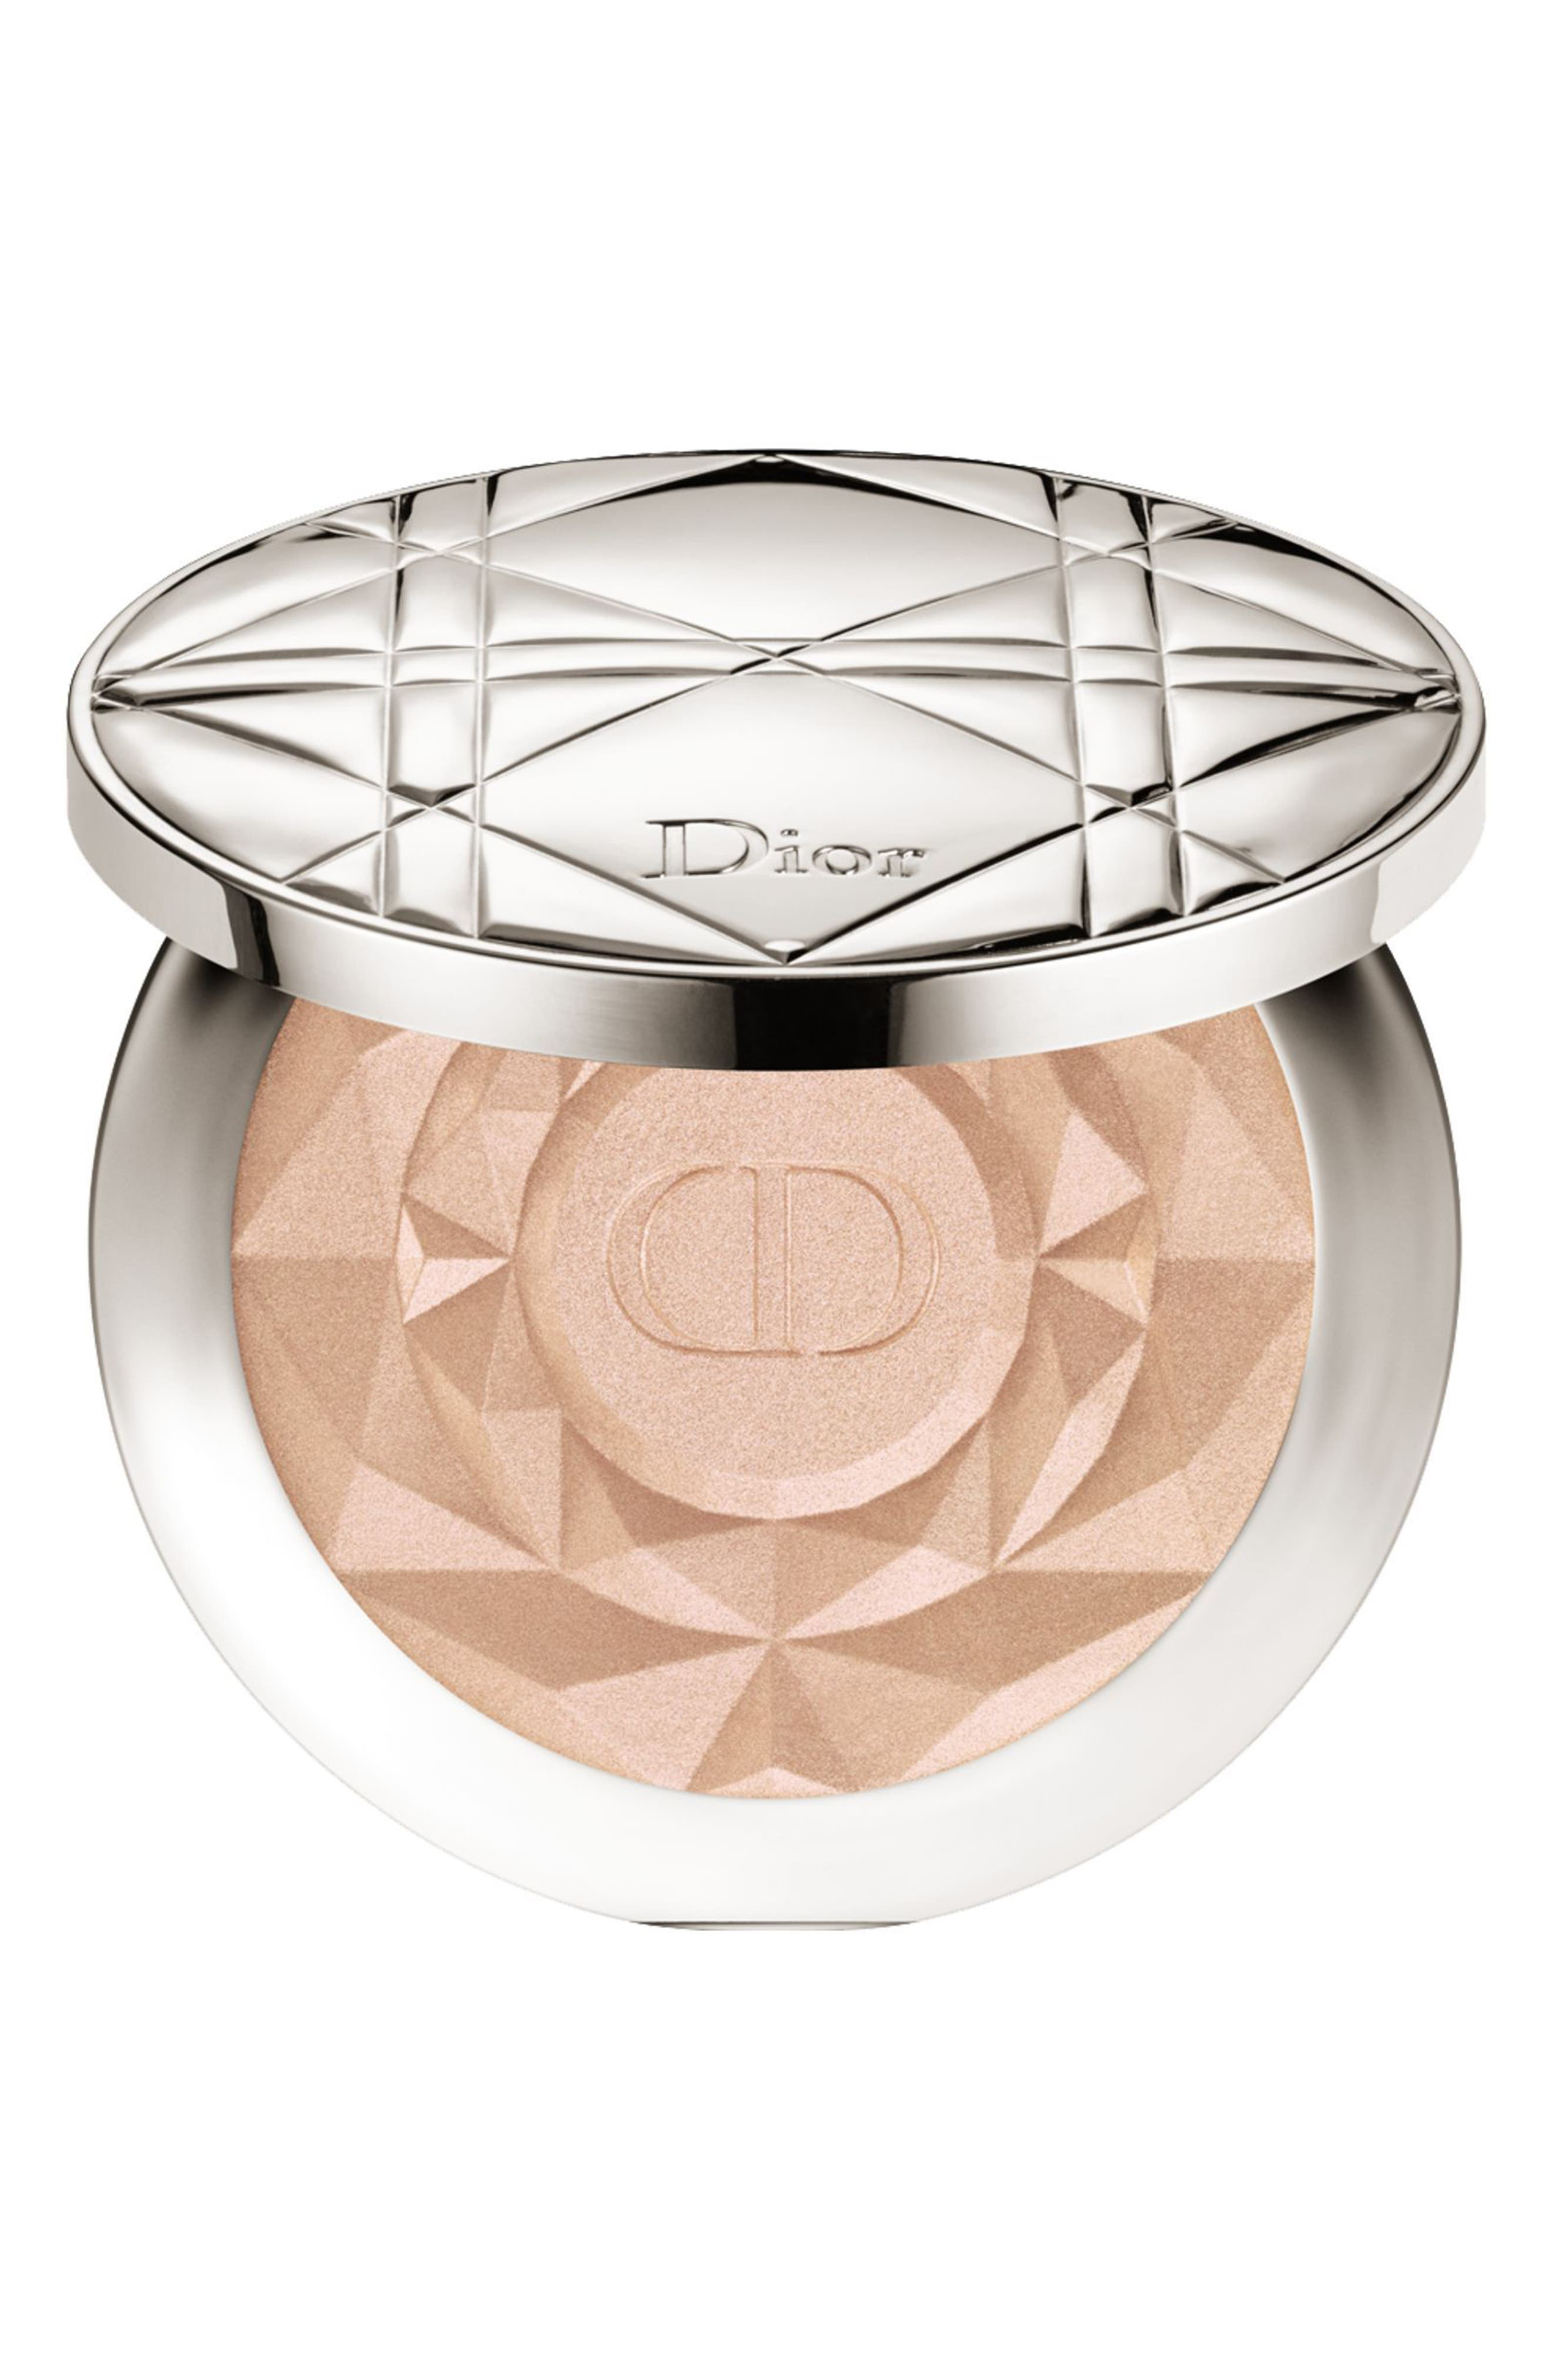 Main Image - Dior Diorskin Nude Air Luminizer Precious Rocks Shimmering Sculpting Powder (Limited Edition)